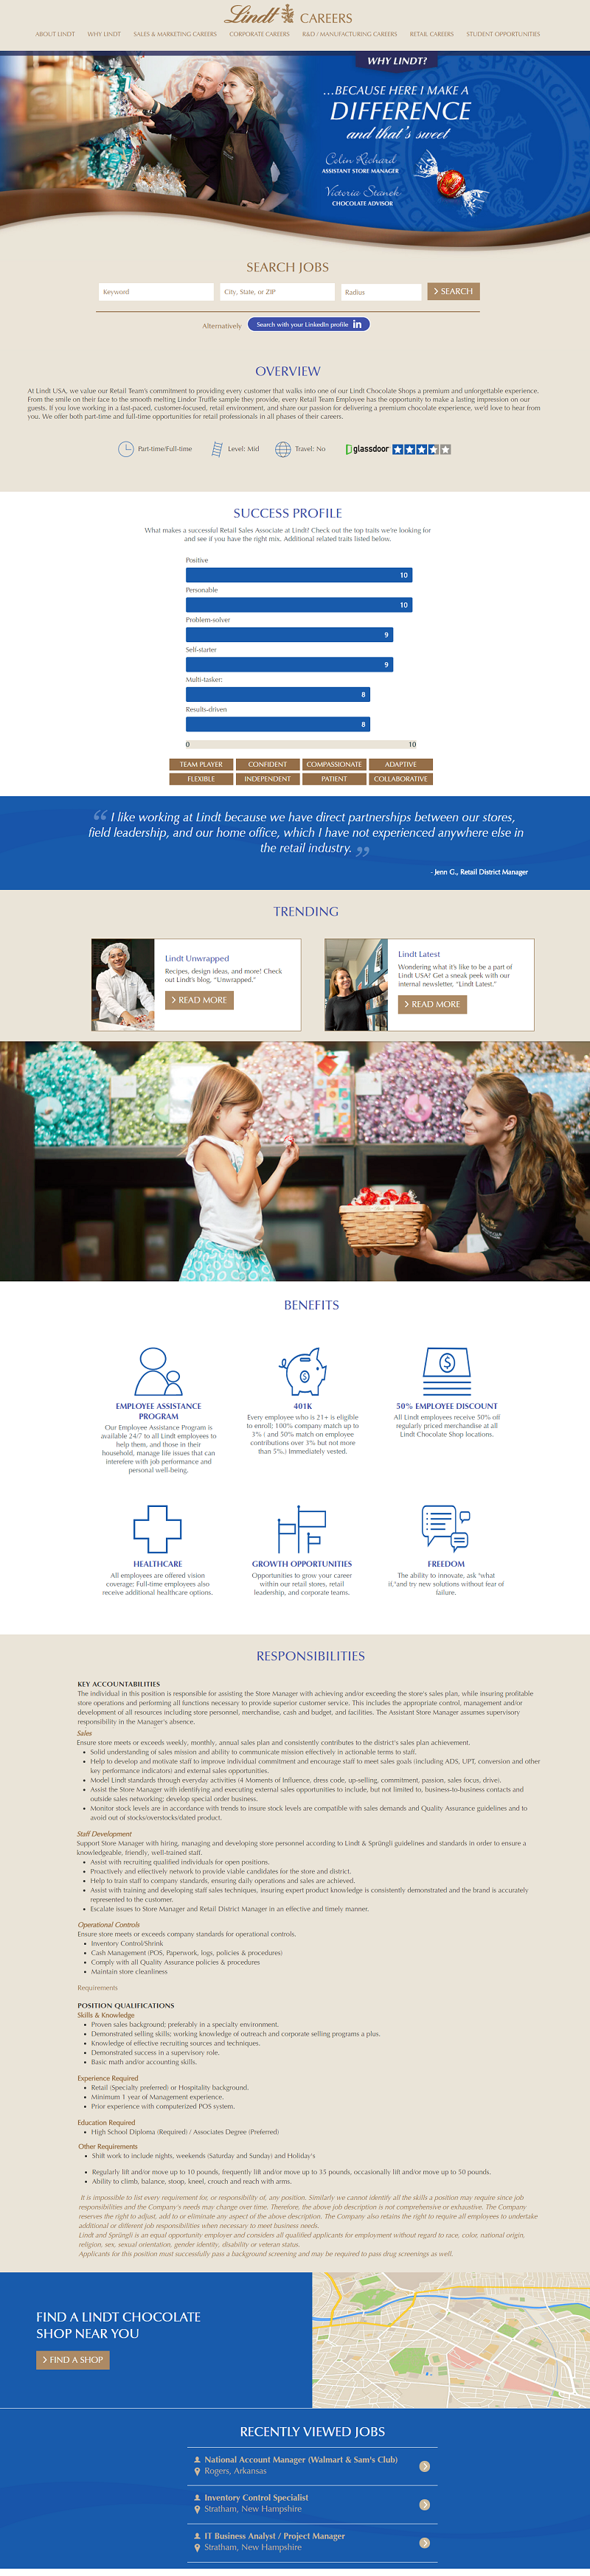 Lindt Mini Career Site Job Description